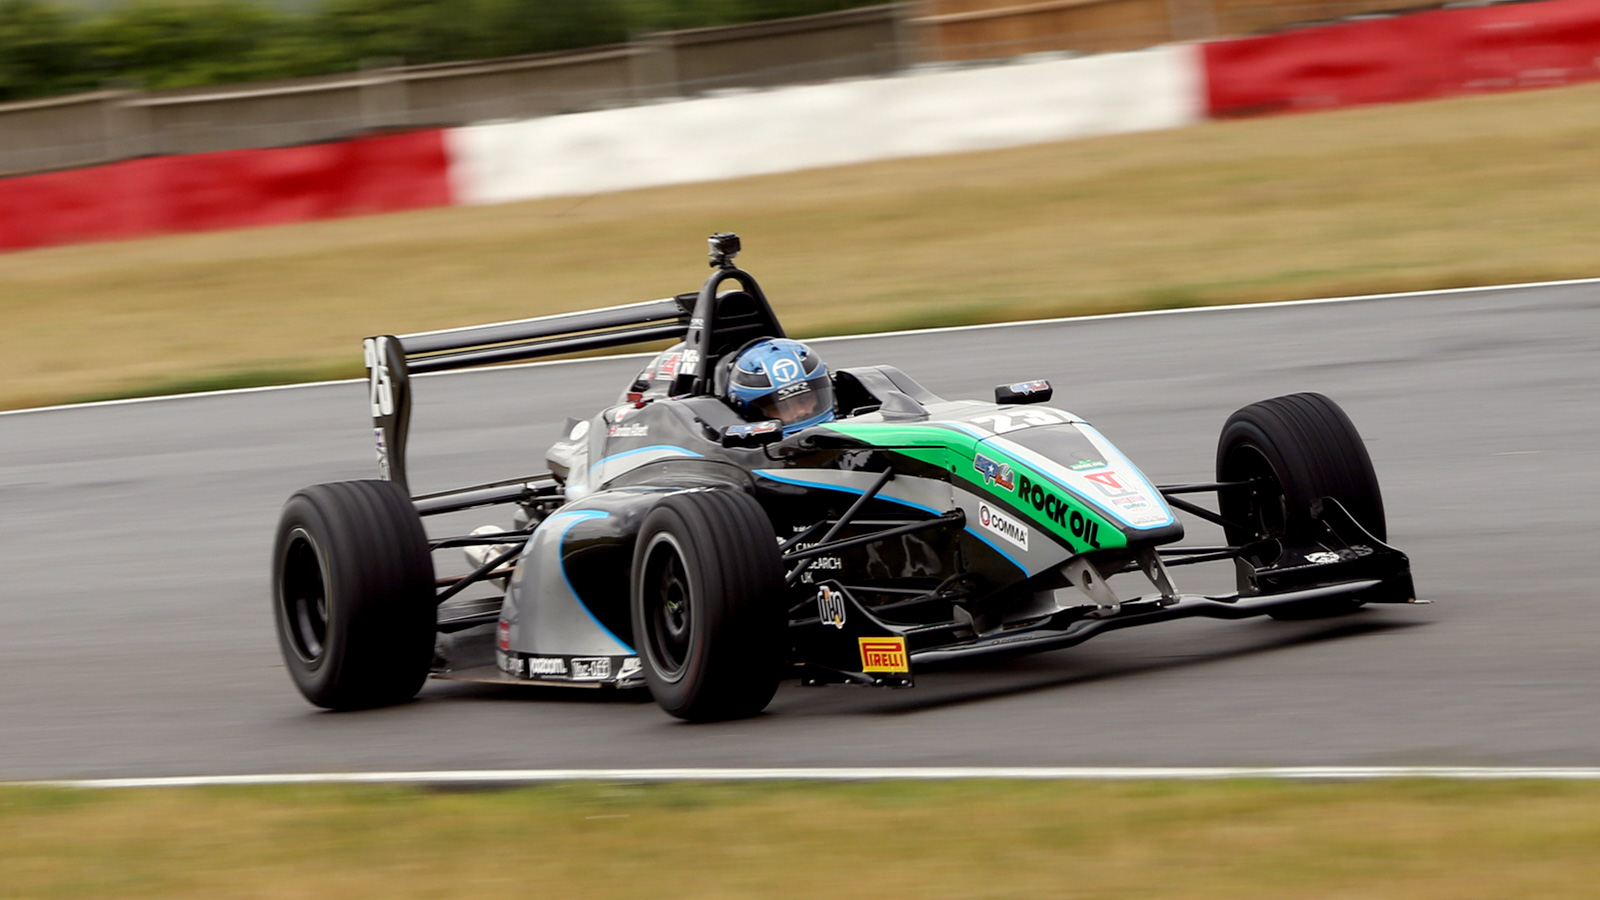 Jordan Albert also secured a brace of top five results during BRDC F4's most recent visit to the GP track last August.